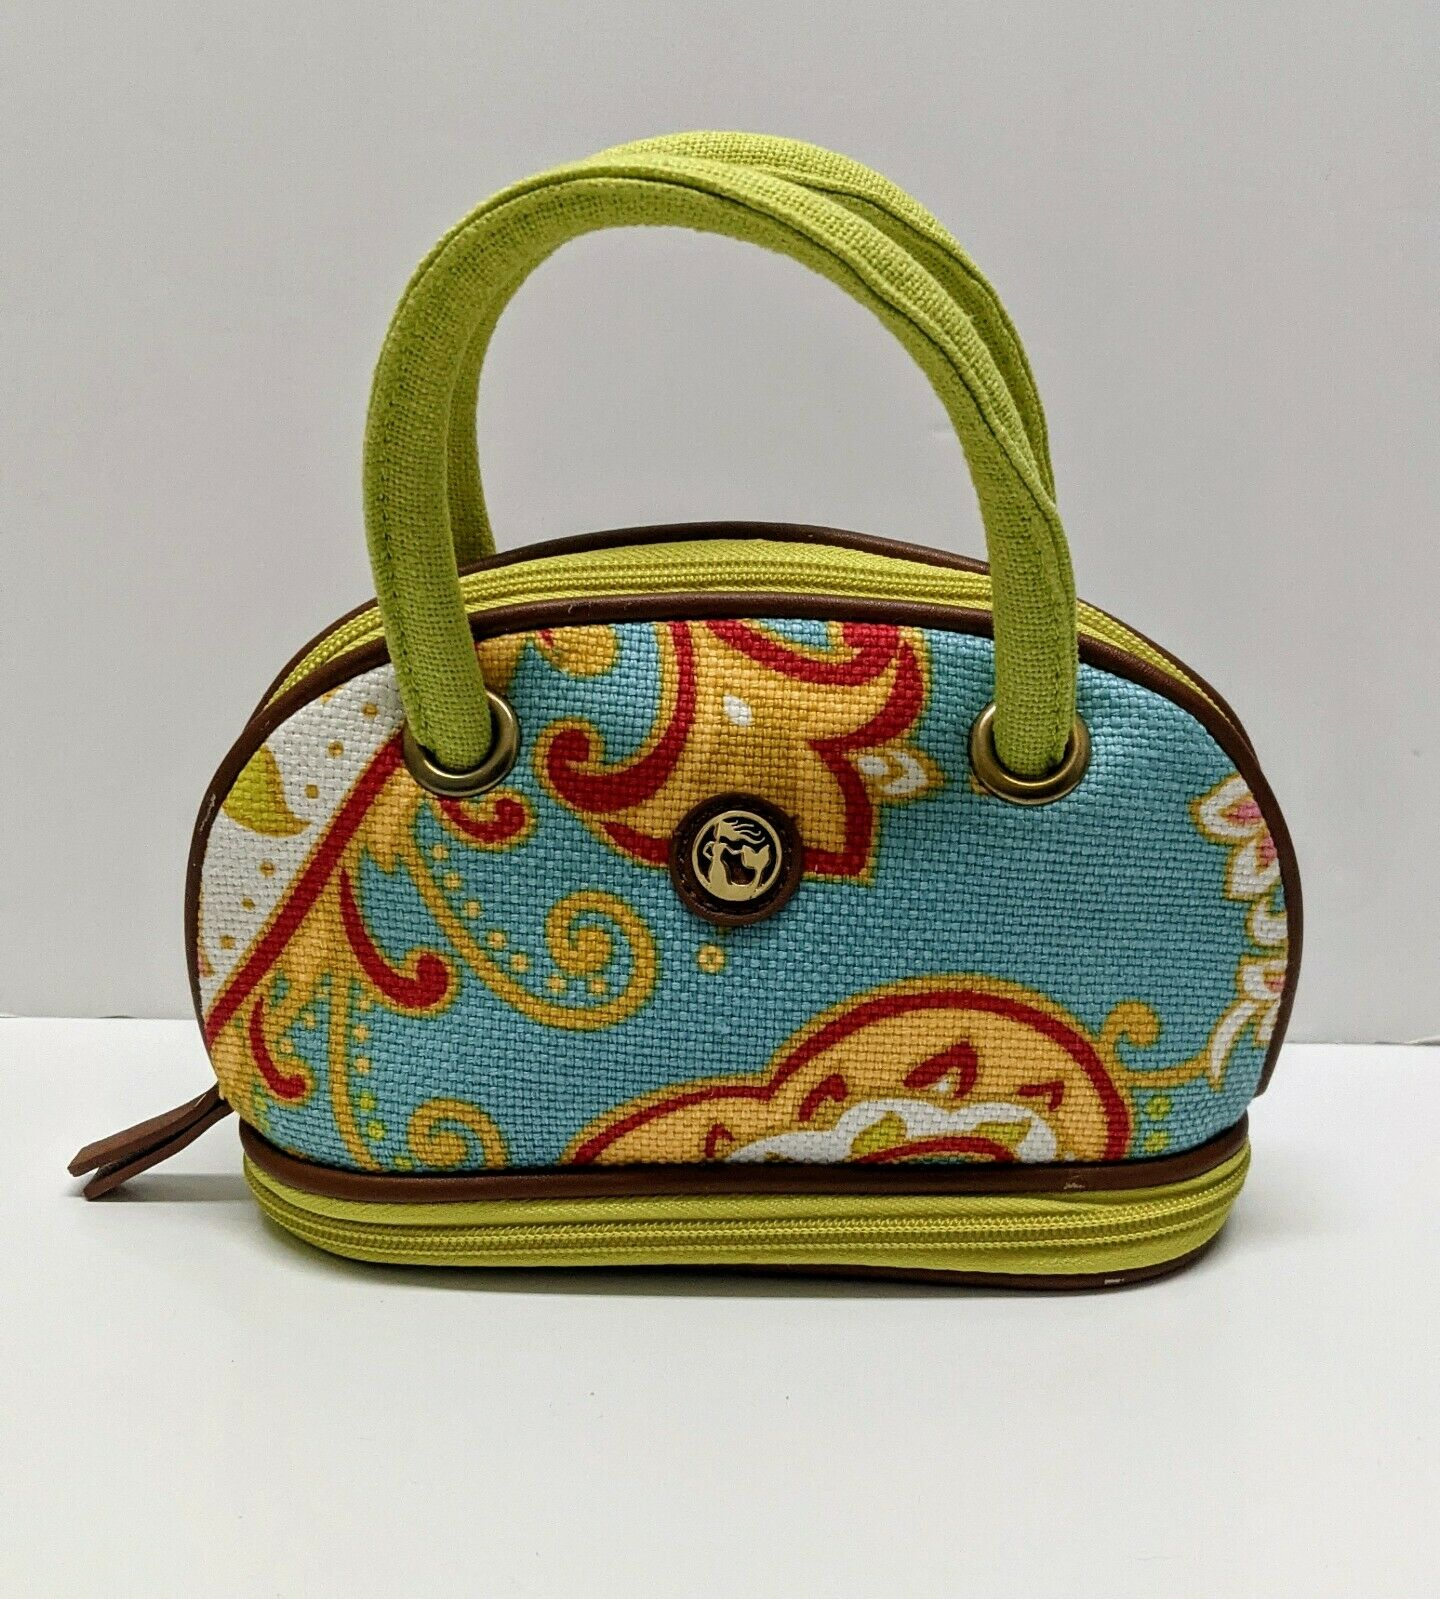 SPARTINA Daufuskie Island Leather Linen Small Purse Make Up Bag Tote Green Blue